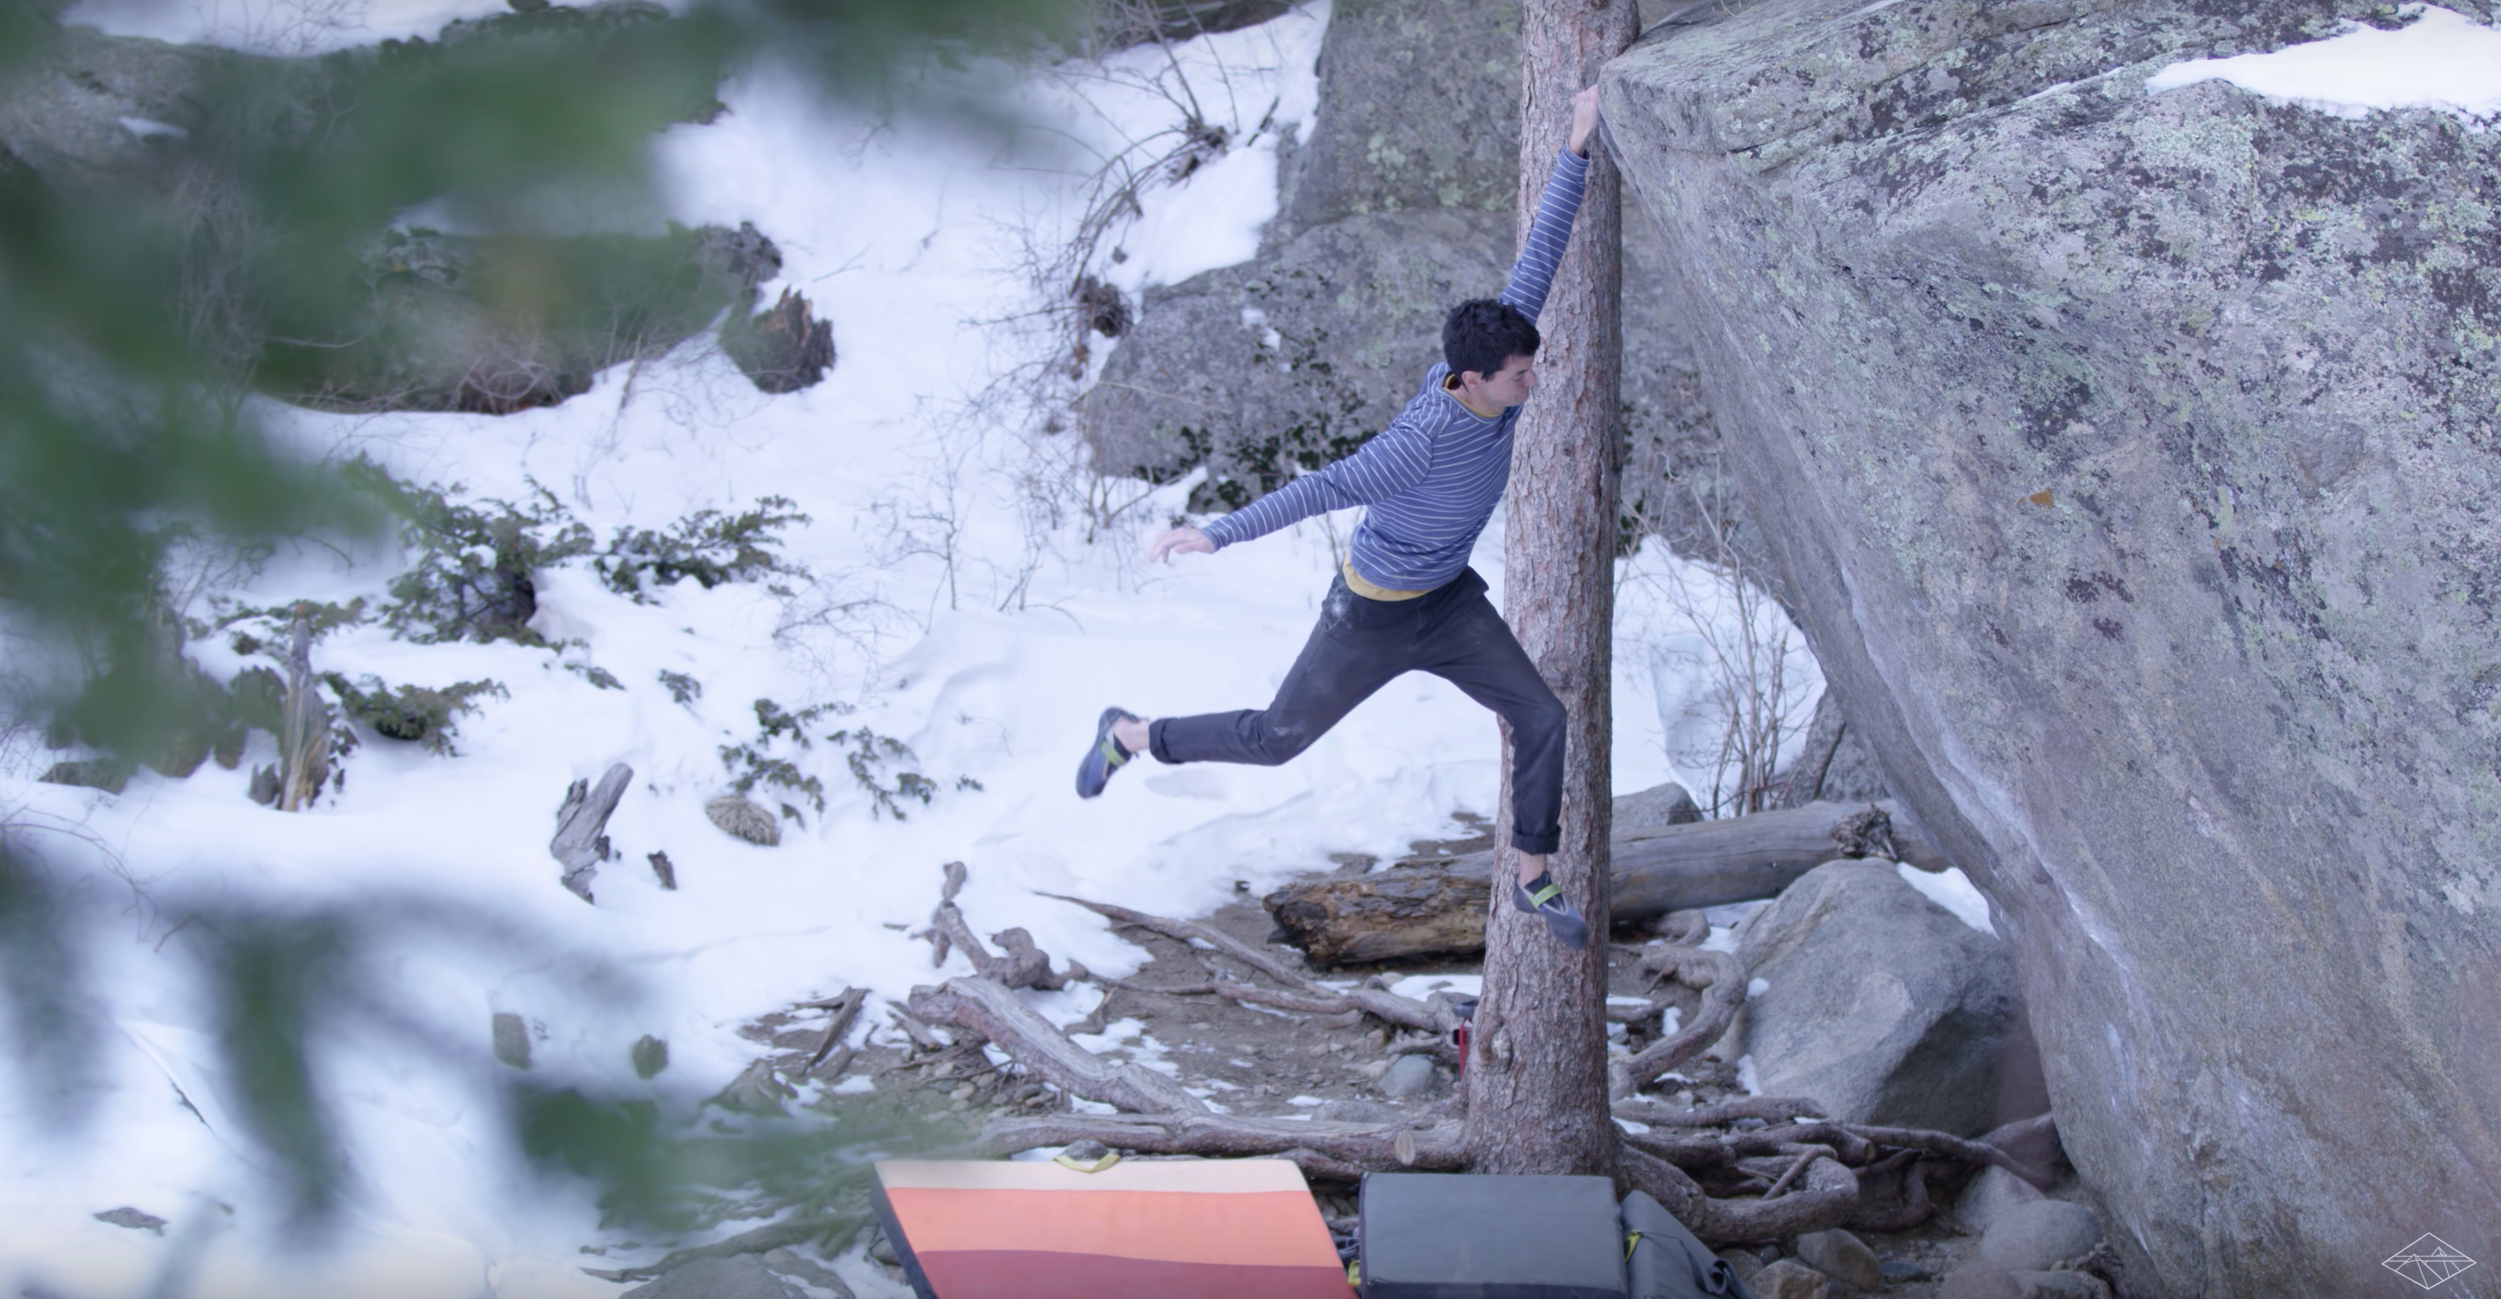 Paul Robinson: Making Oscar Worthy Videos and Climbing V15 Simultaneously